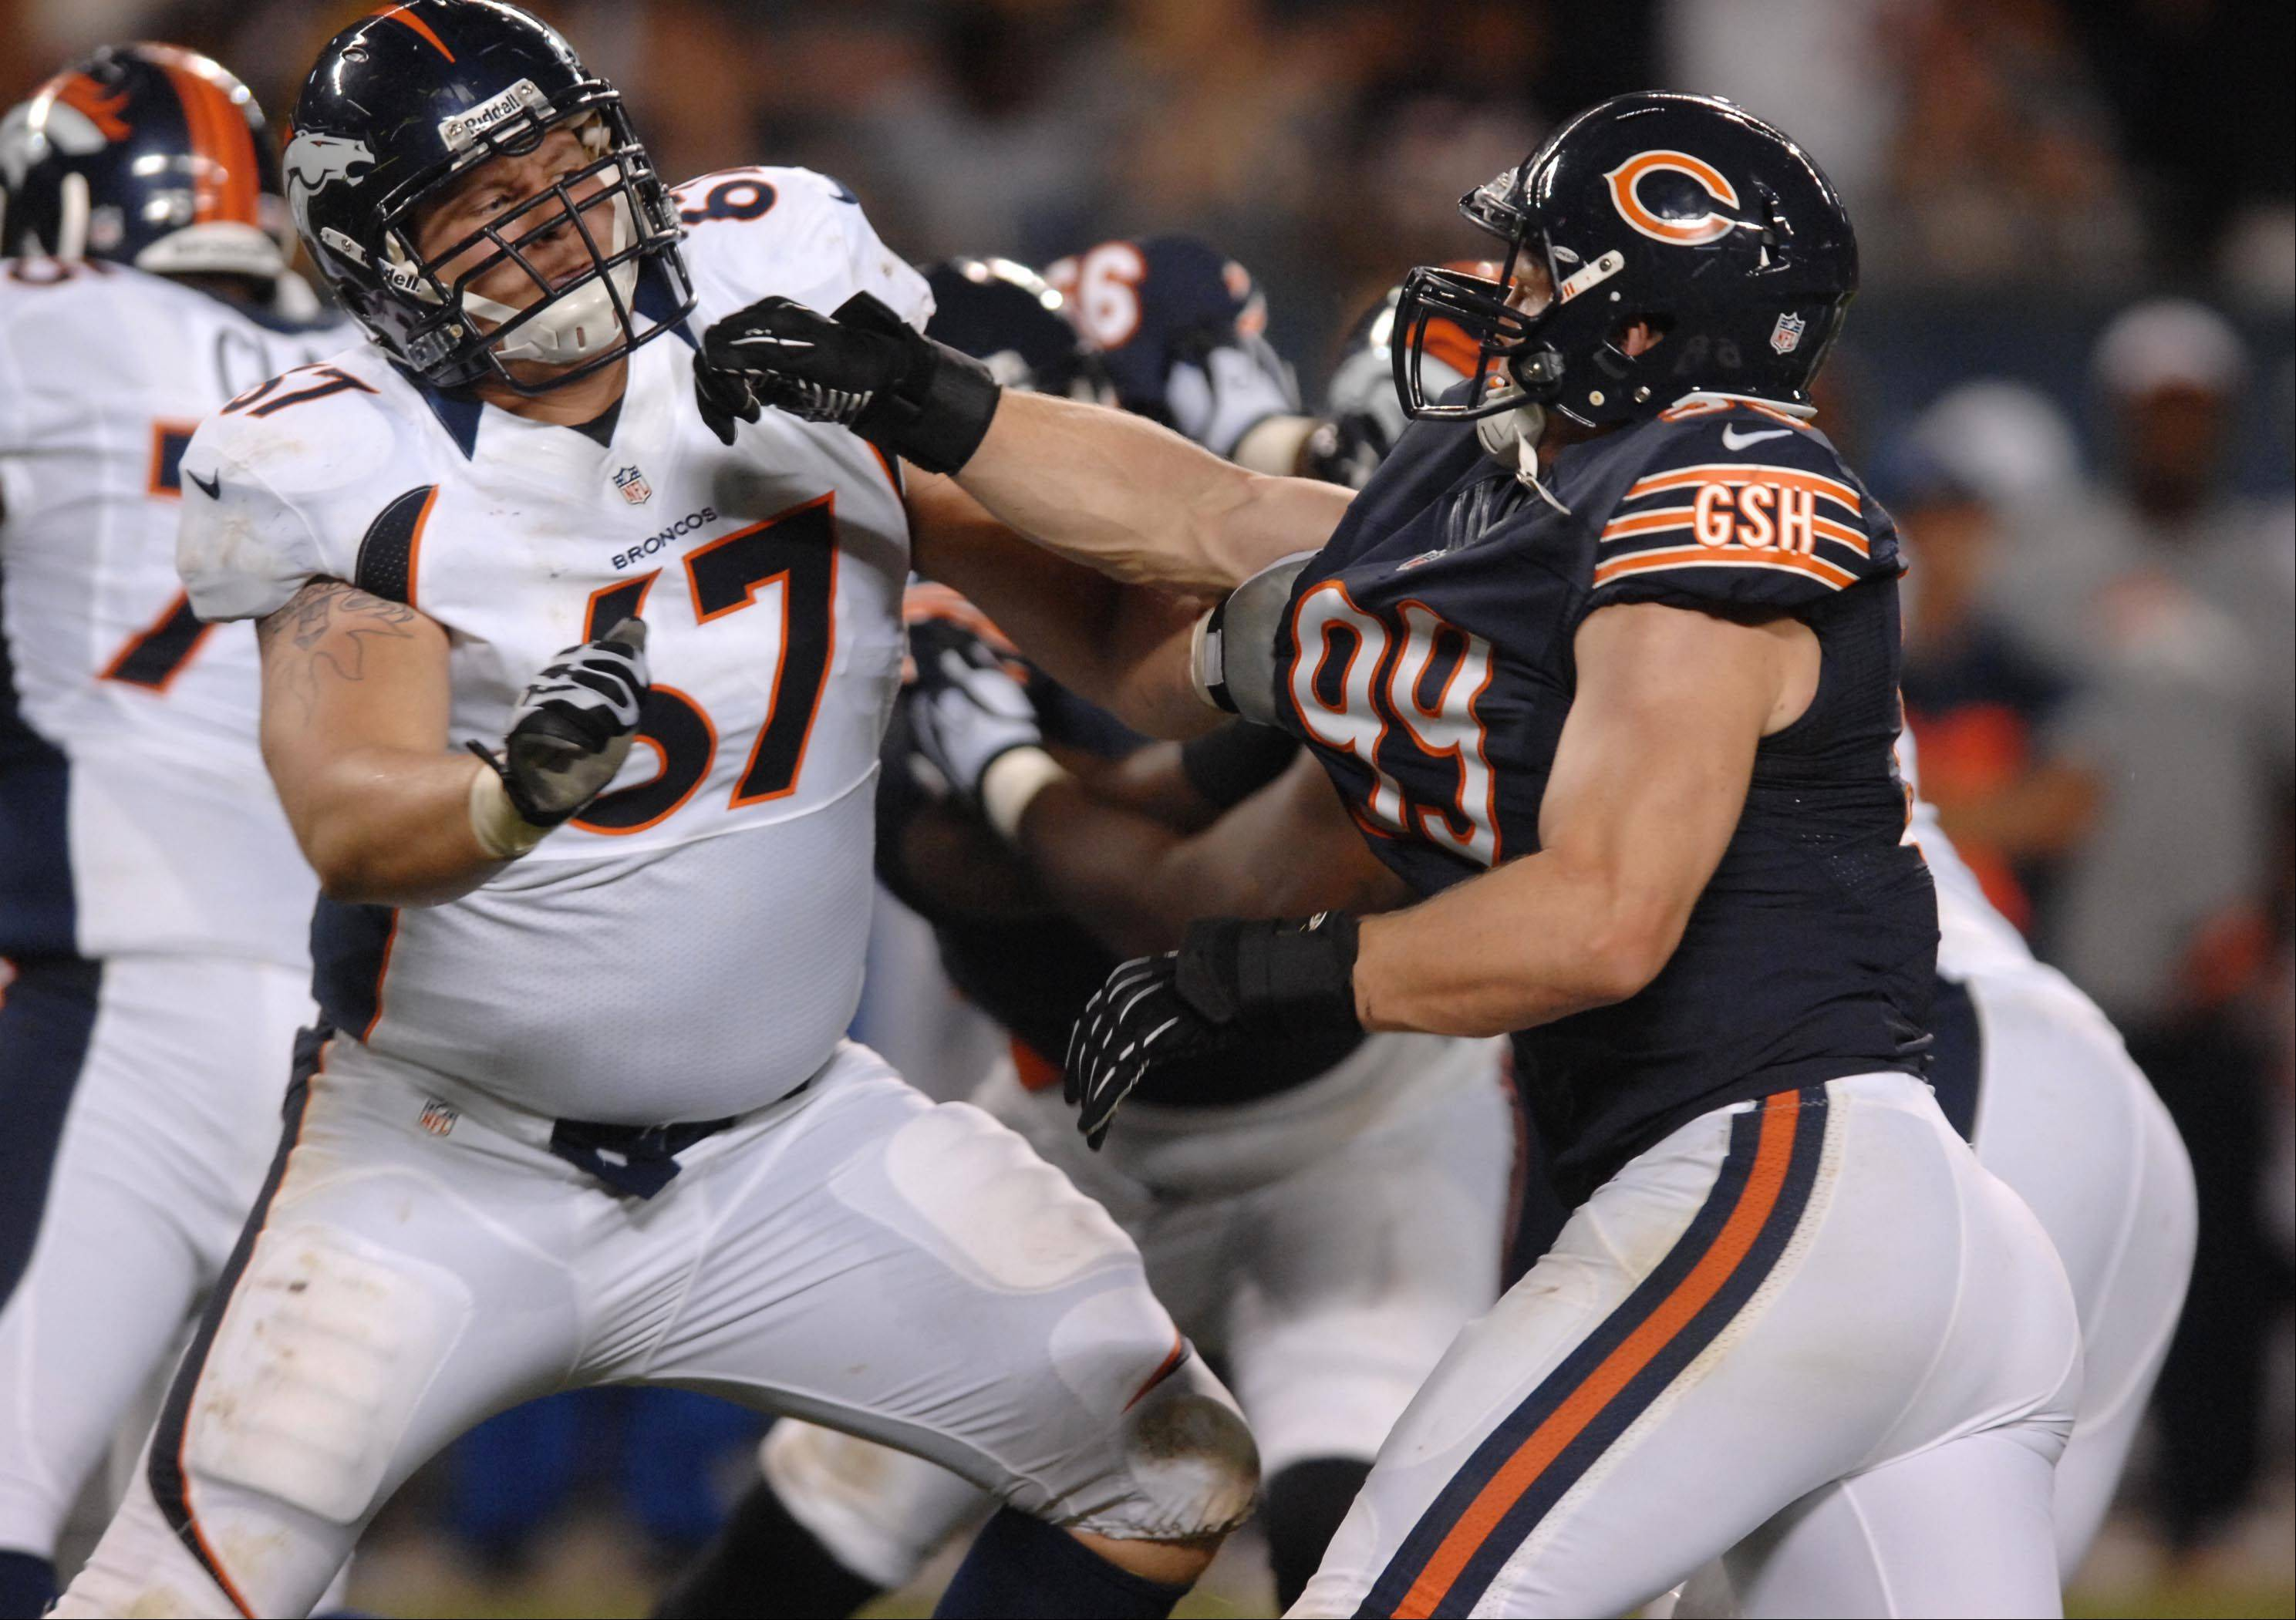 Chicago Bears defensive end Shea McClellin plays against Denver Broncos offensive tackle Adam Grant .